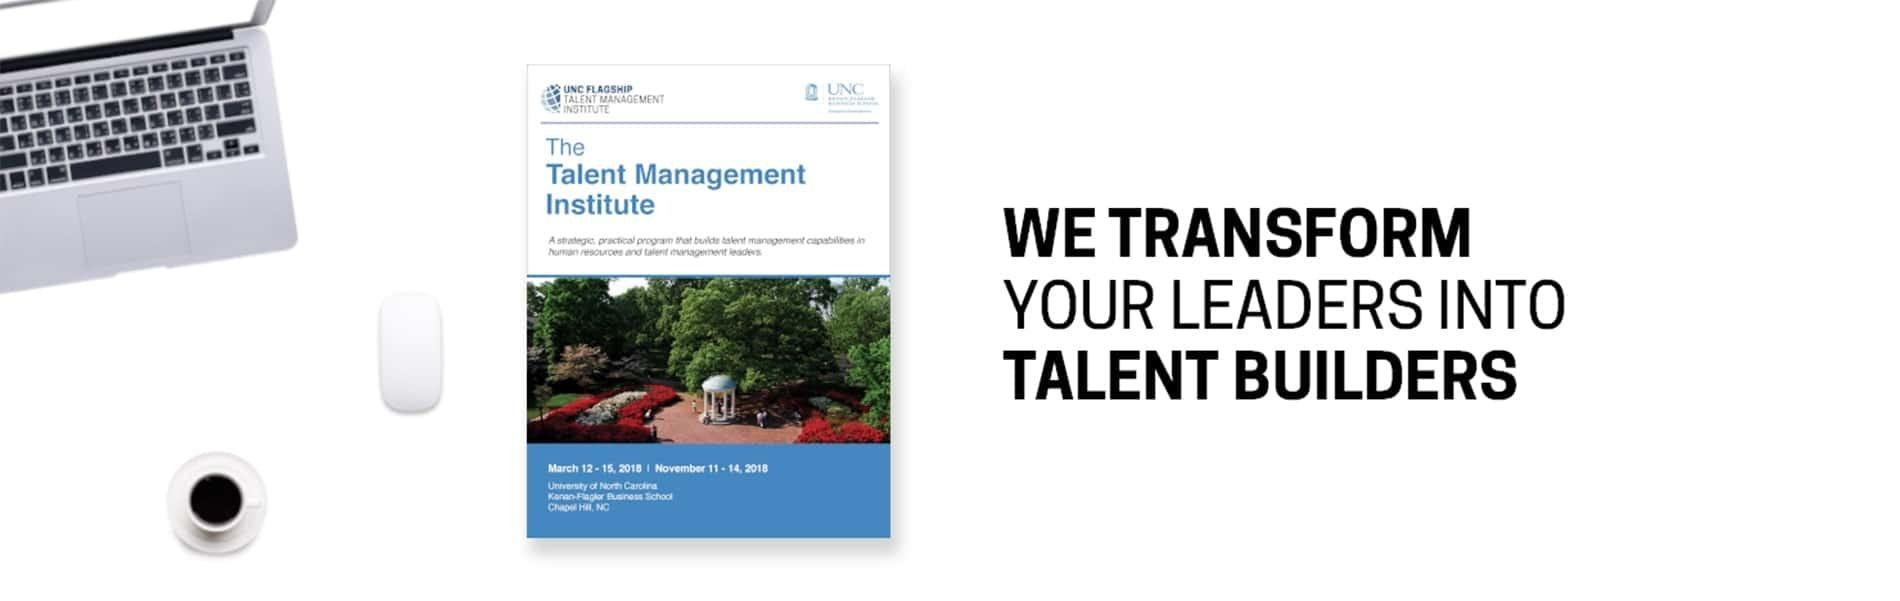 Talent Strategy Group image 3